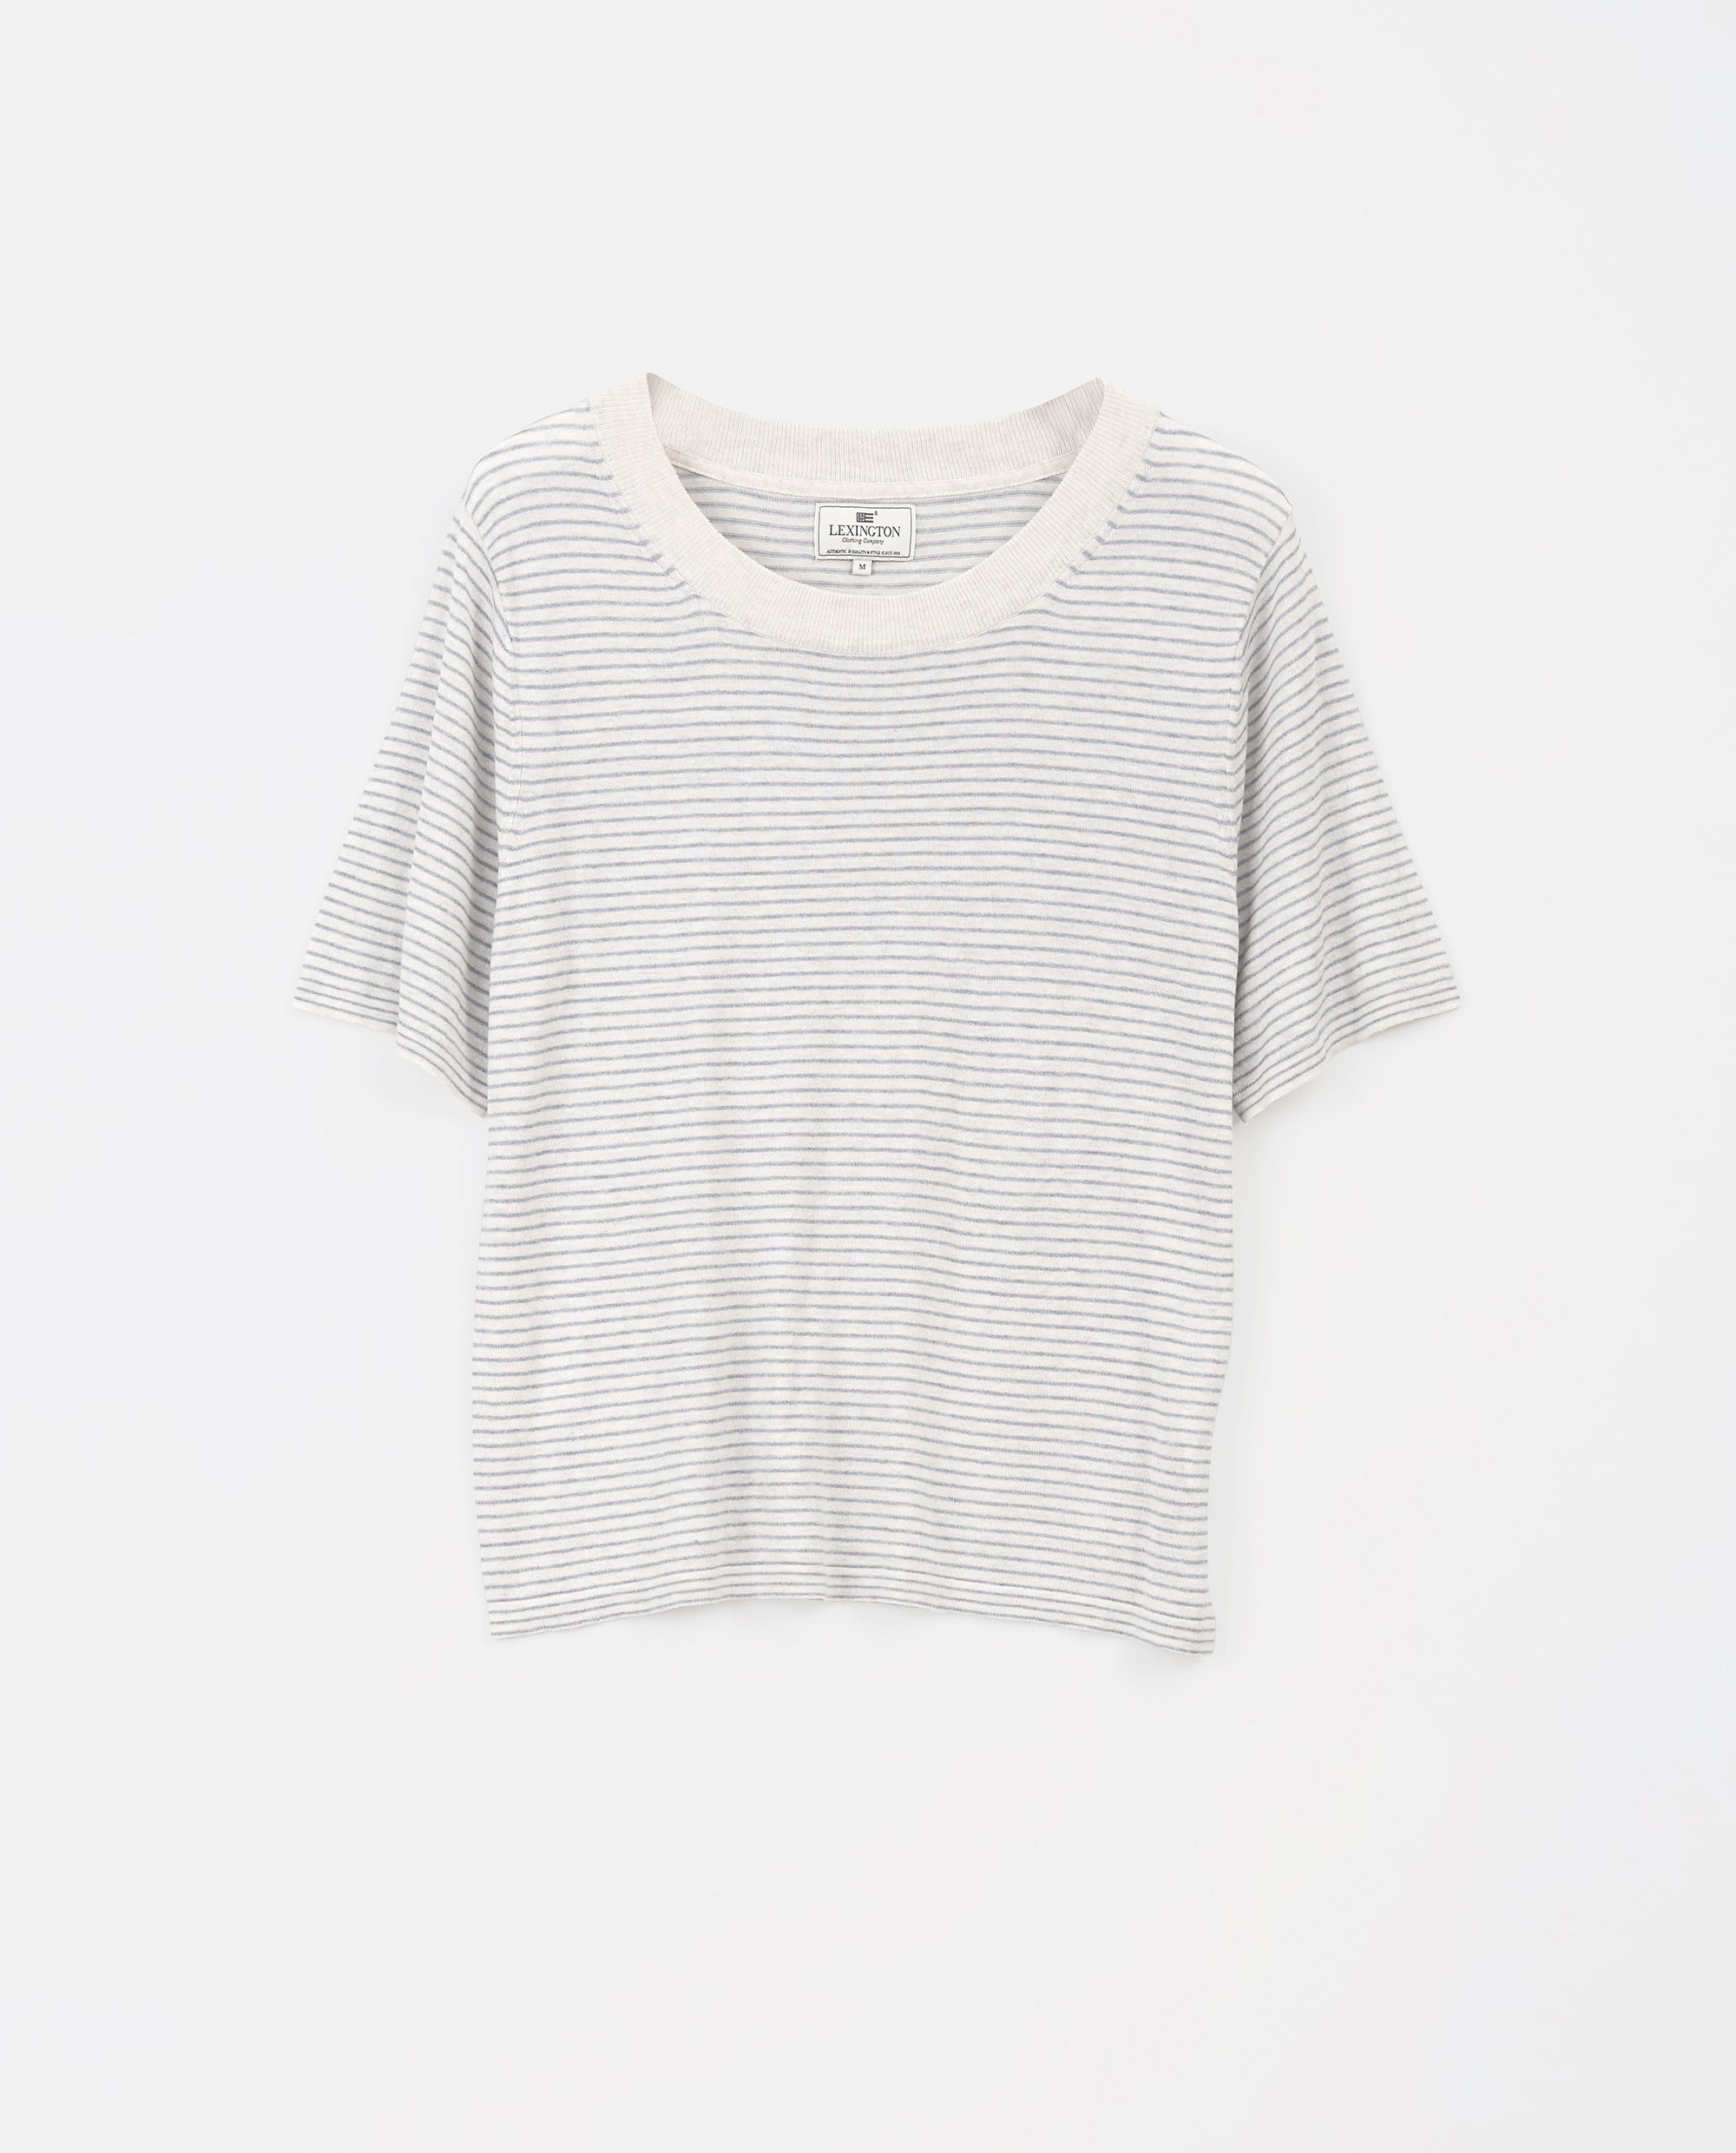 Amber Knitted Cotton/Bamboo Tee, Lt Blue/White Stripe